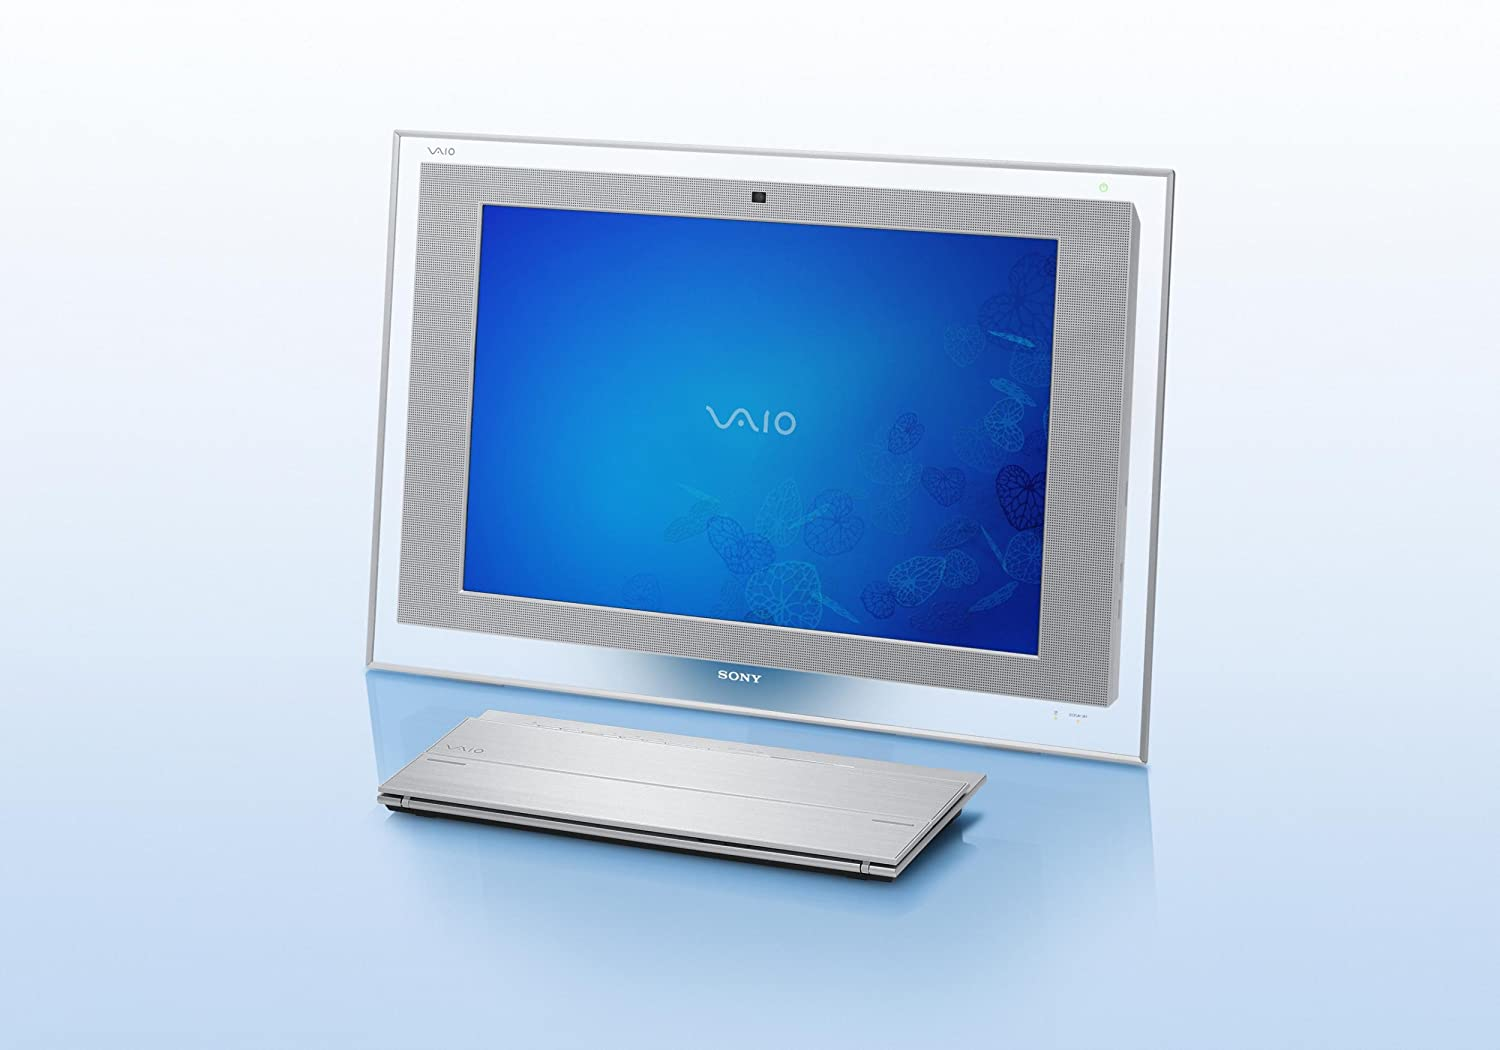 Sony VAIO VGC-LT33E 22-inch PC/TV All-In-One (2.1 GHz Intel Core 2 Duo T8100 Processor, 3 GB RAM, 640 GB Hard Drive, Vista Premium) (Discontinued by ...